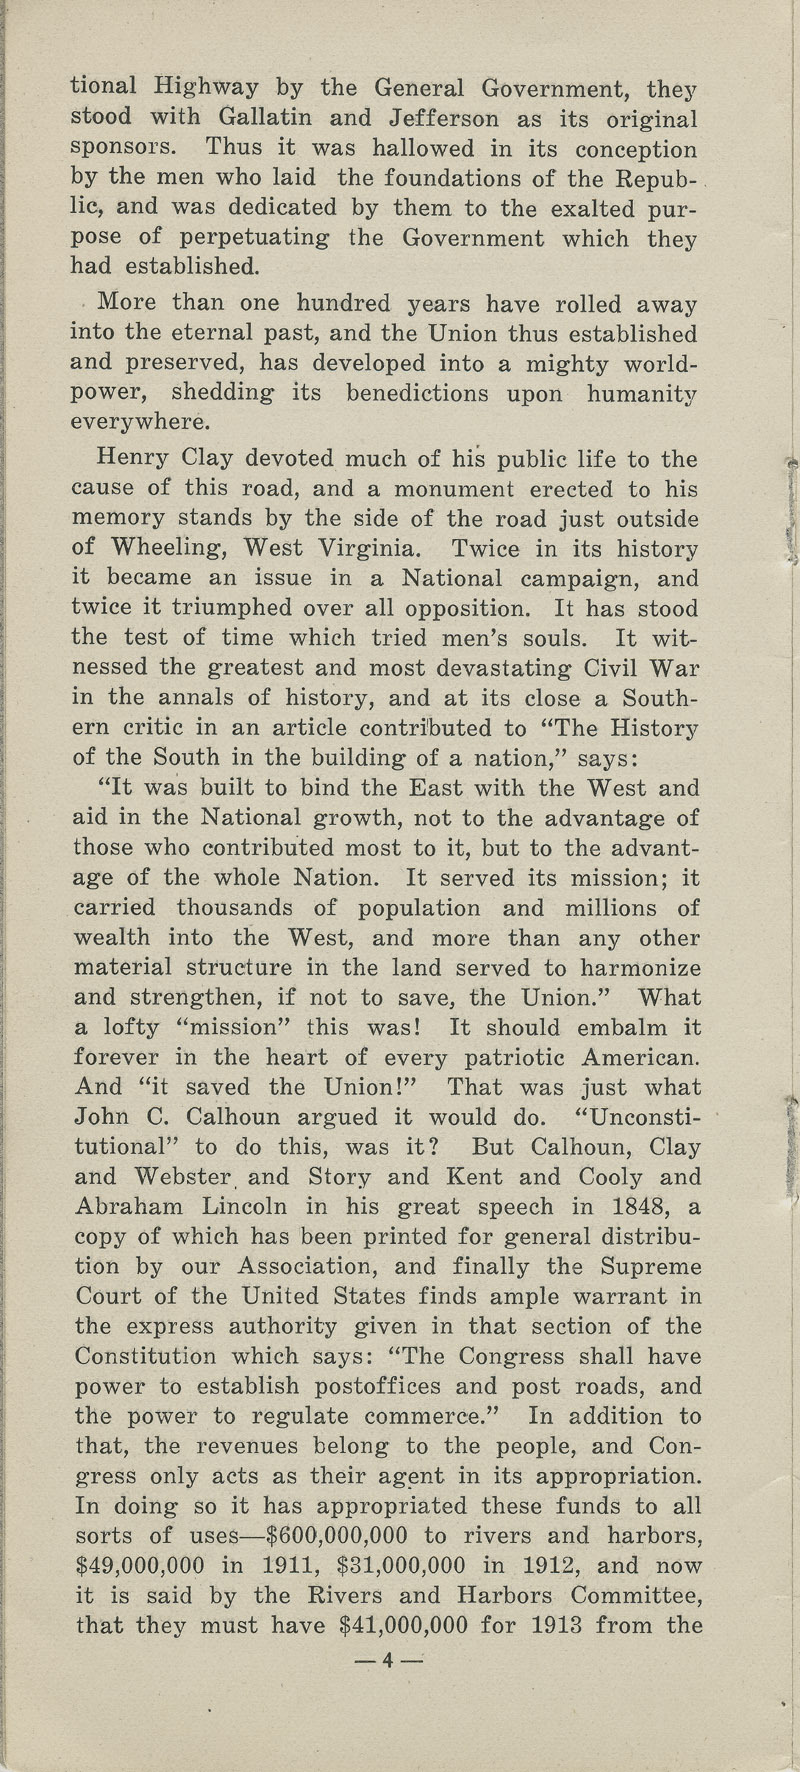 National Old Trails Road project : arguments for its construction and maintenance by the United States government - pg. 4